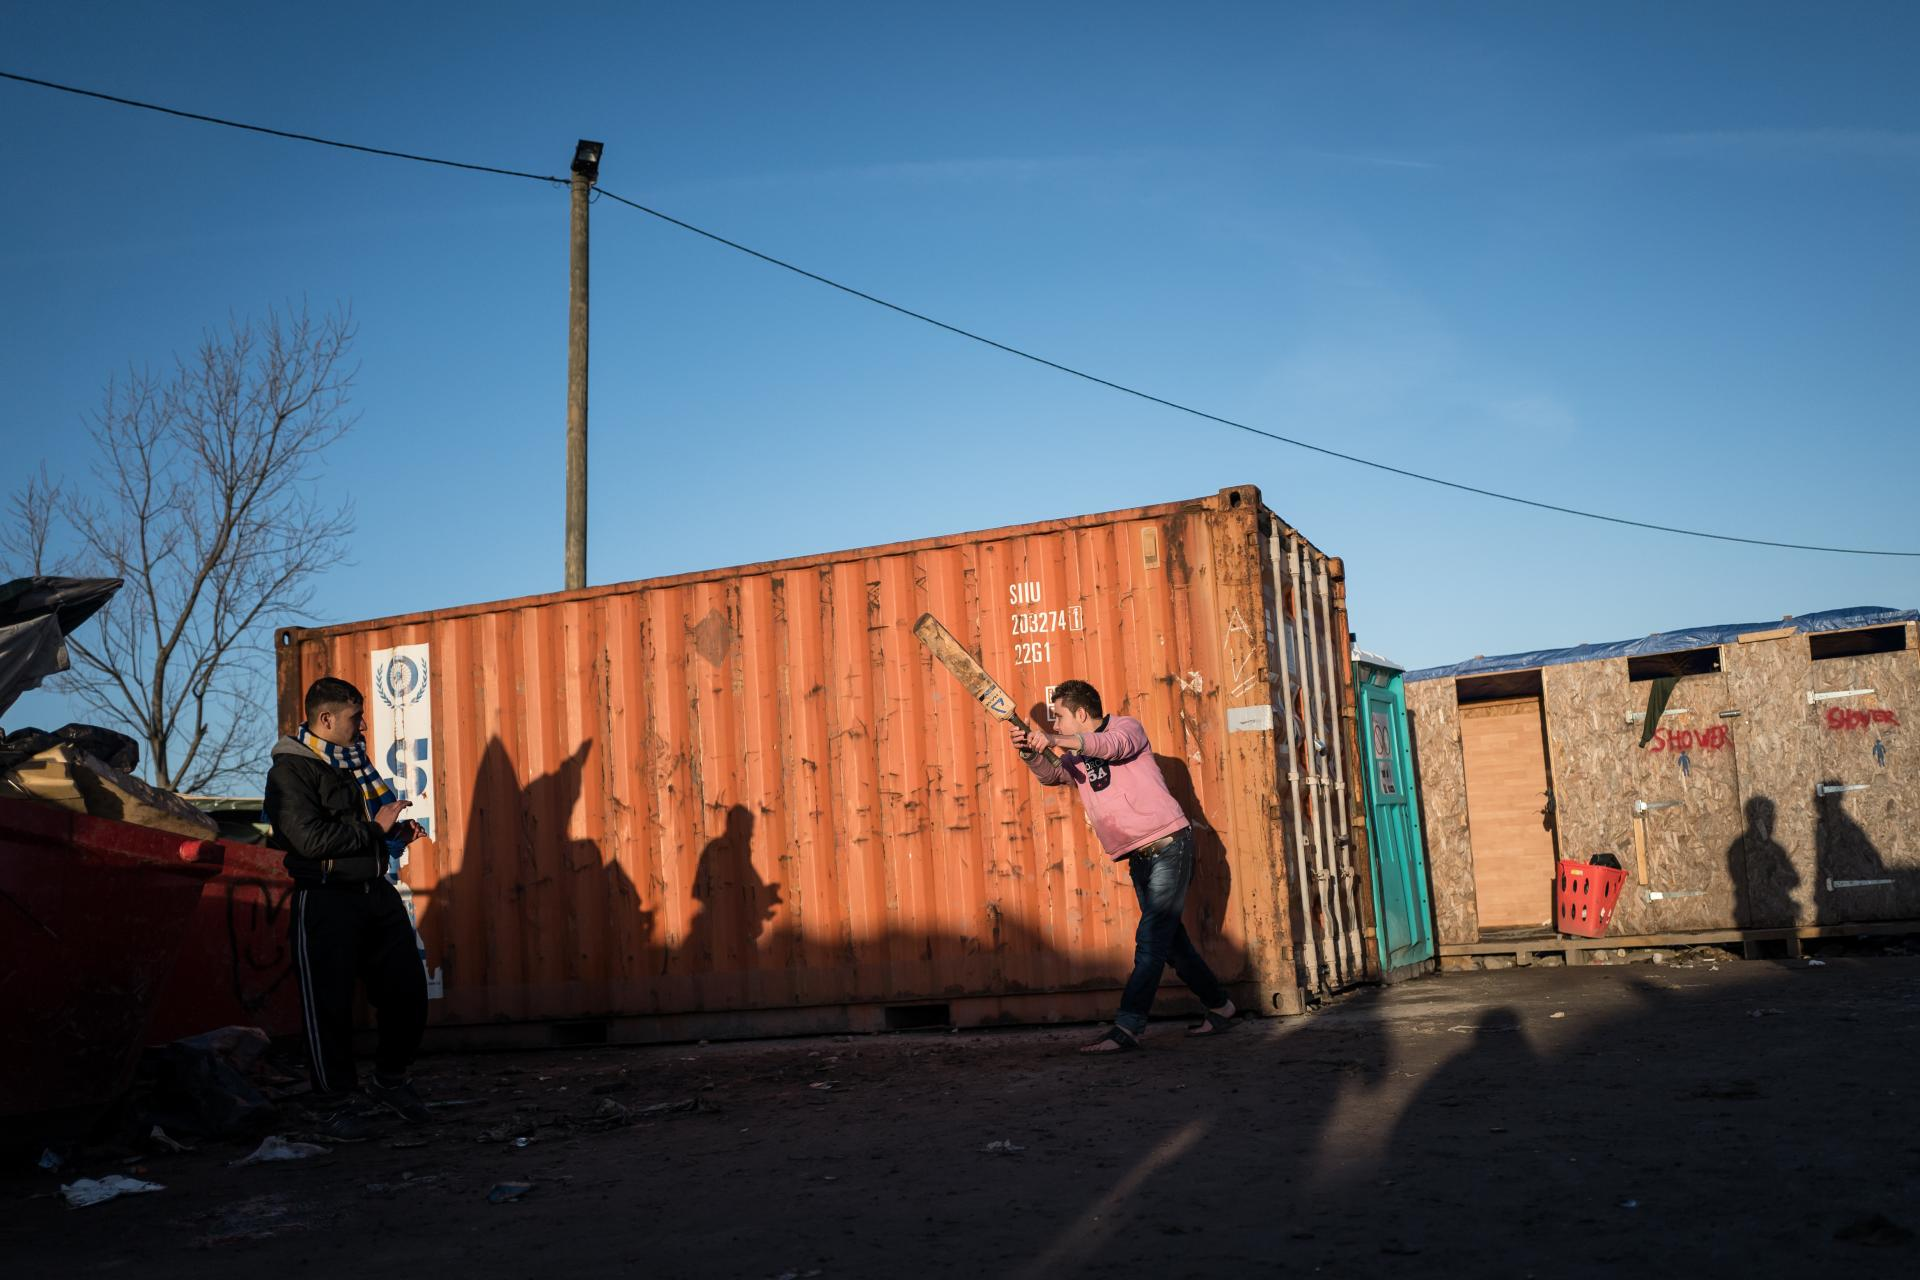 Afghan teenagers play cricket against a shipping container in the Calais 'Jungle', in an area of the camp known as 'Afghan Square'.